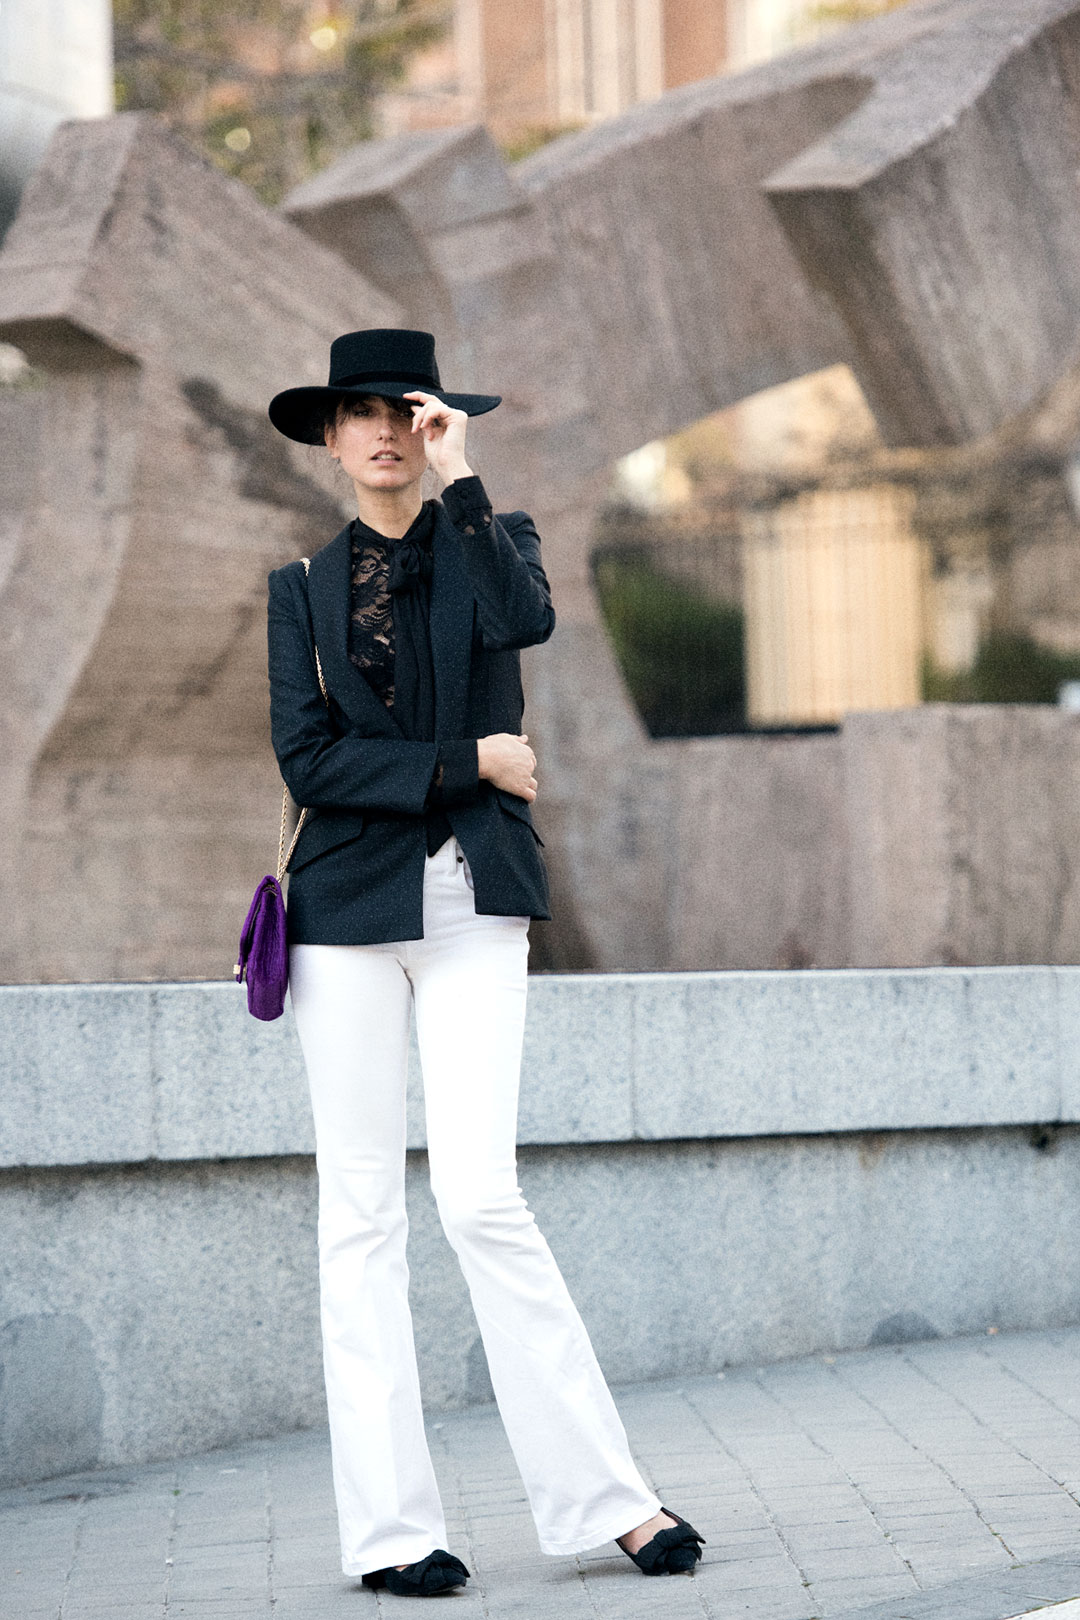 black-and-white-streestyle-mitmeblog-web-09